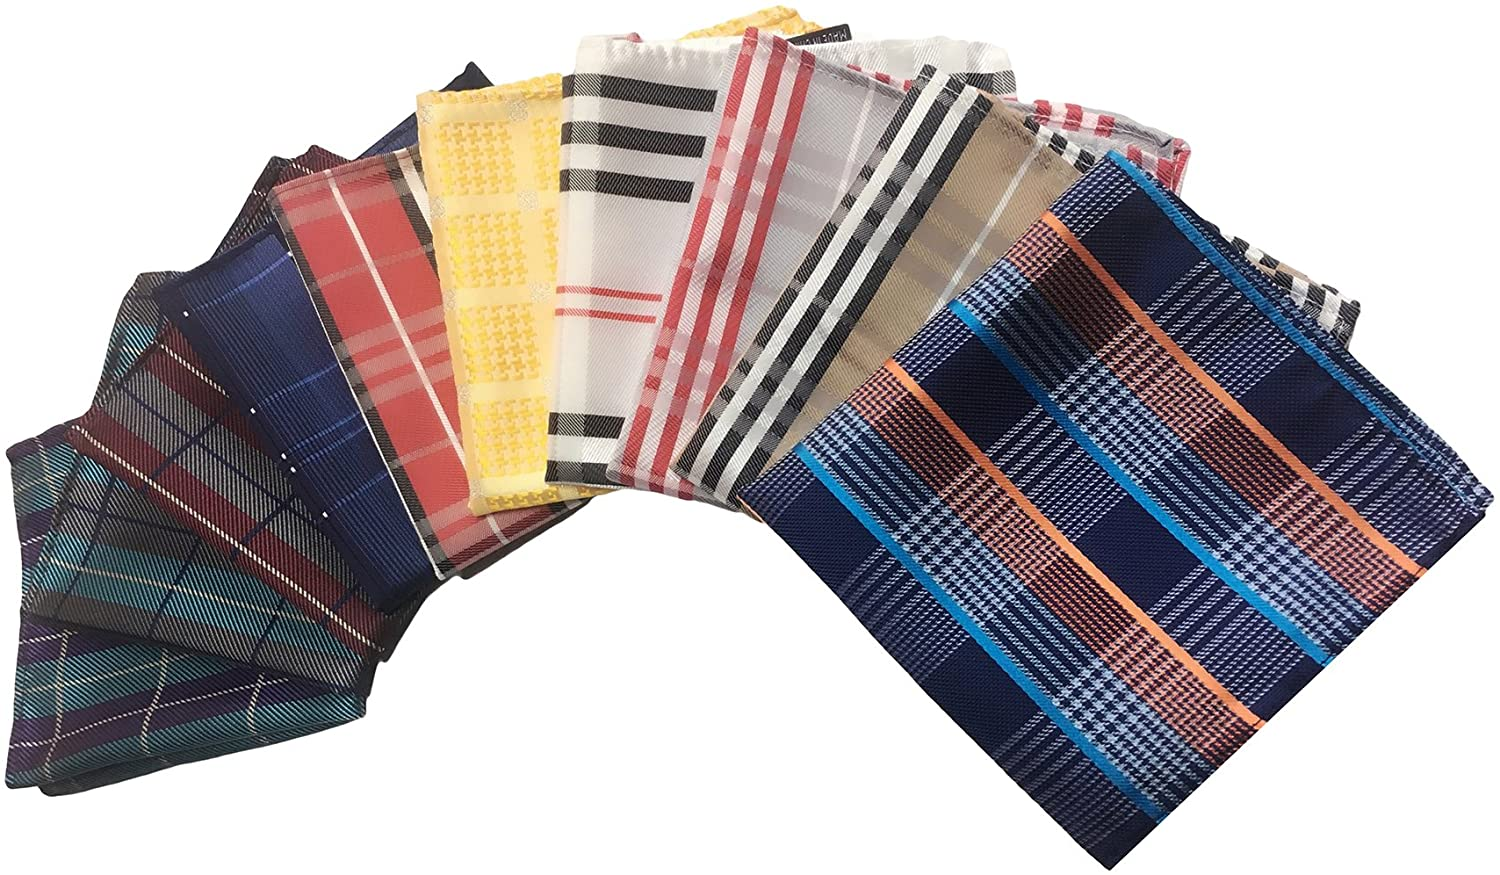 MENDENG Men's 10 Pack Plaid Check Striped Assorted Pocket Square Handkerchief